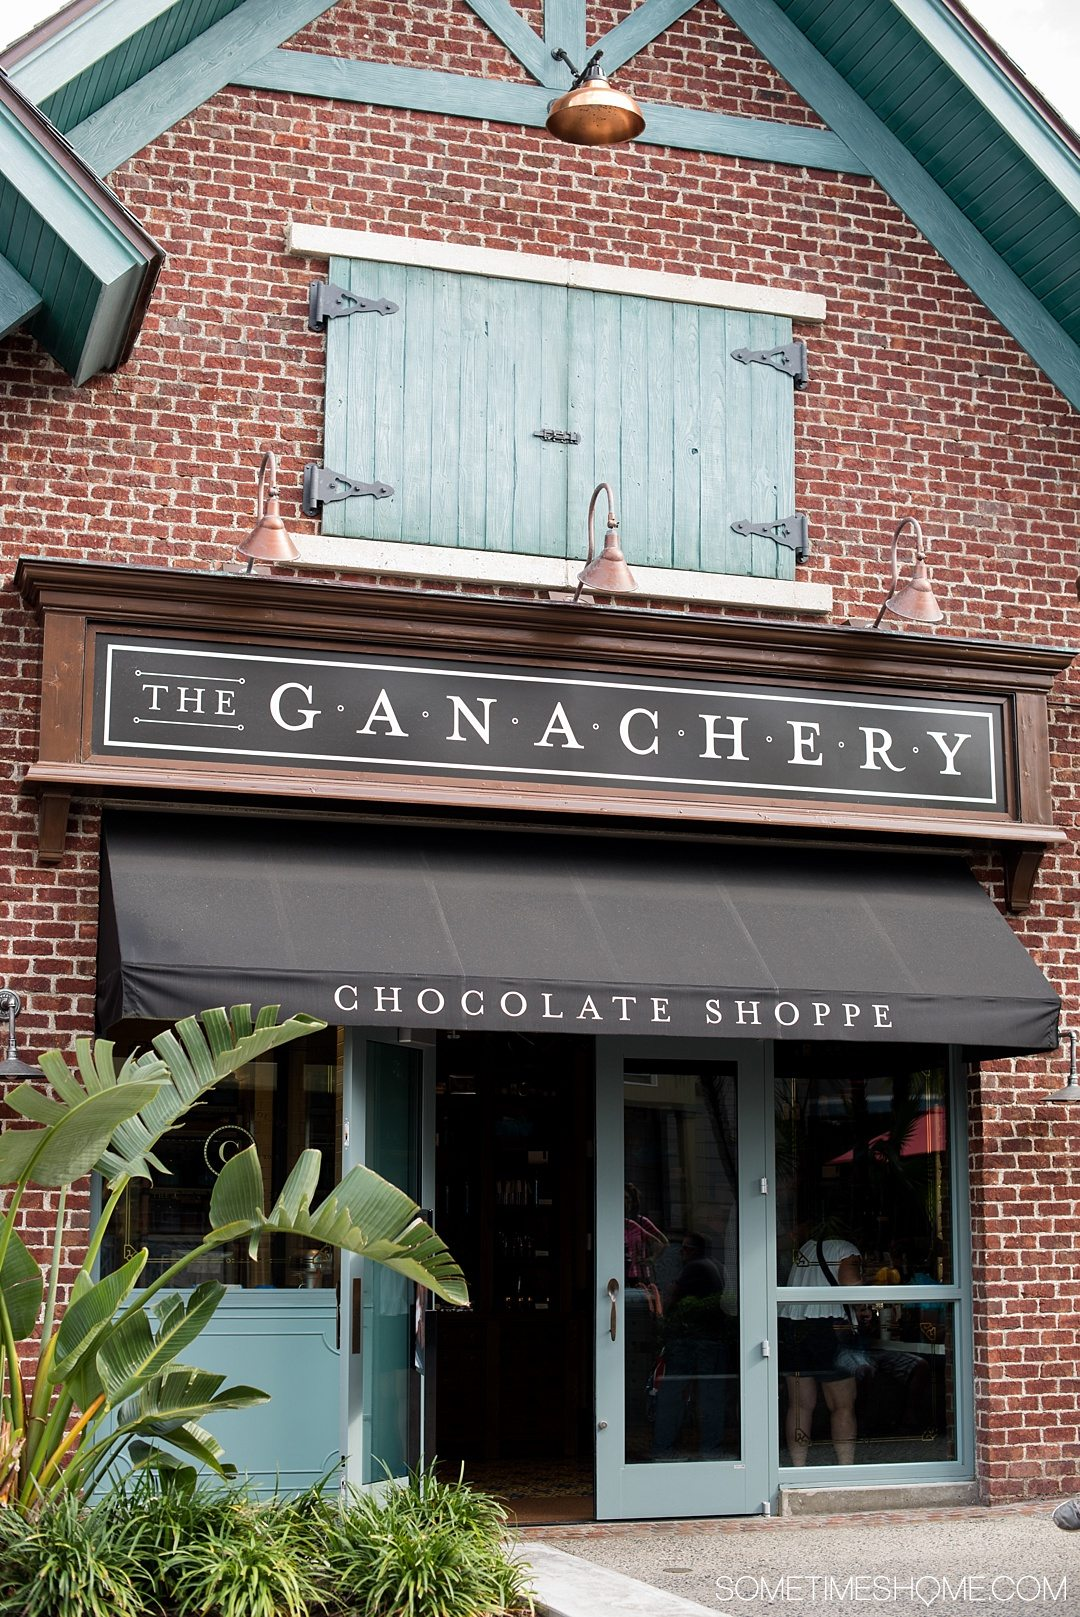 Heading to Walt Disney World? Definitely travel to Disney Springs (formally known as Downtown Disney) for a trip and indulgence in food! We dish on ideas for the best Disney Springs desserts (like ganache at The Ganachery) with photography at this Orlando, Florida themed area. Click through to Sometimes Home for detailed tips! #DisneySprings #WaltDisneyWorld #DisneyWorld